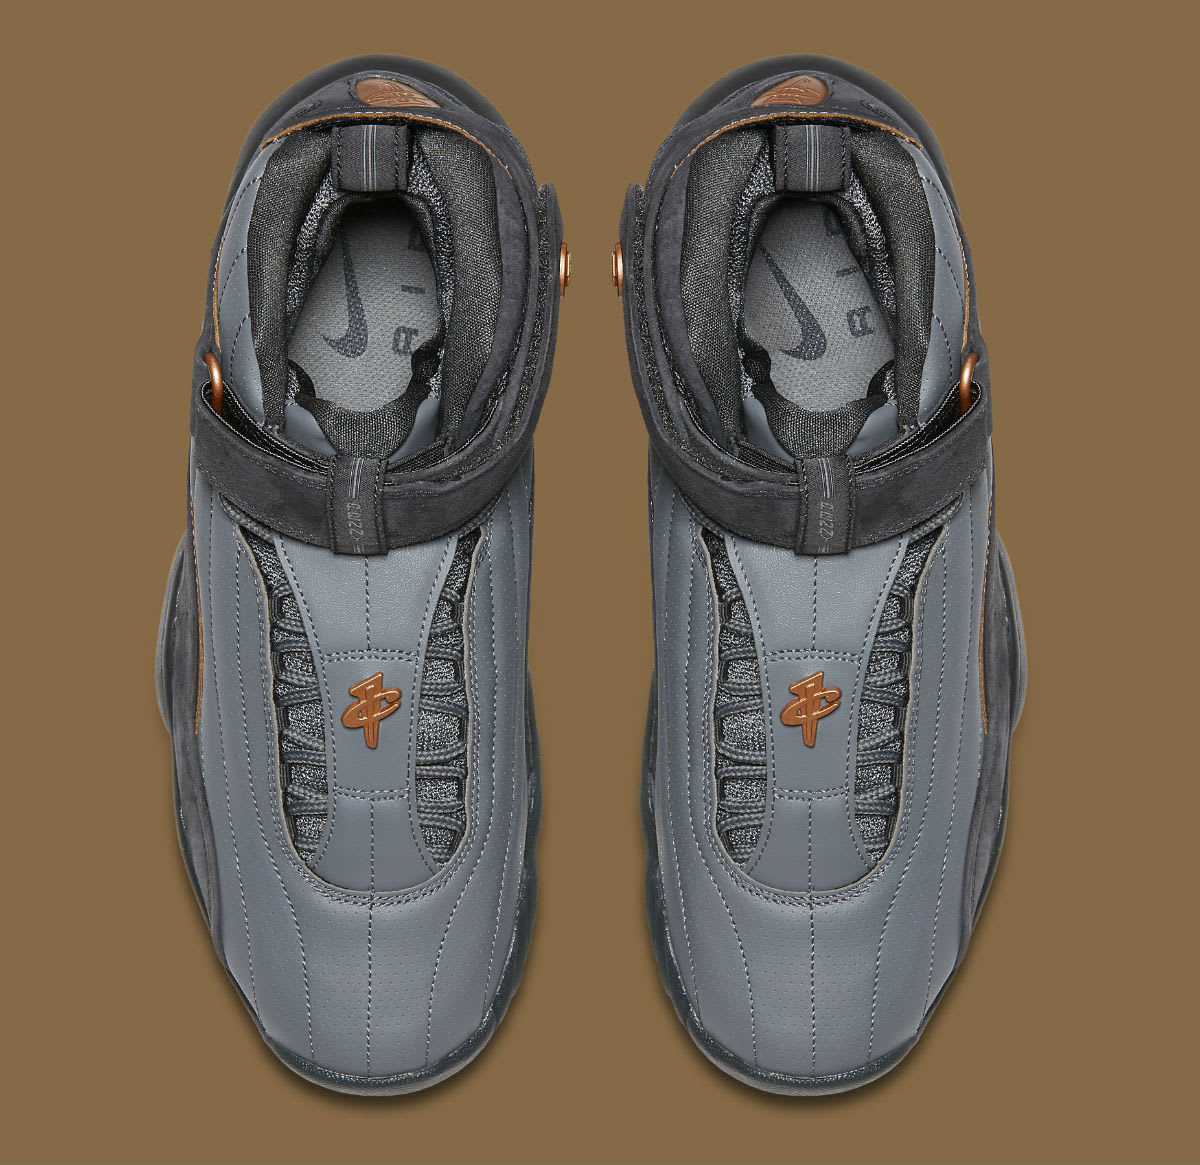 7153d158c46b ... quality design Nike Air Penny 4 Copper Release Date Top 864018-002  862ed 851dc ...